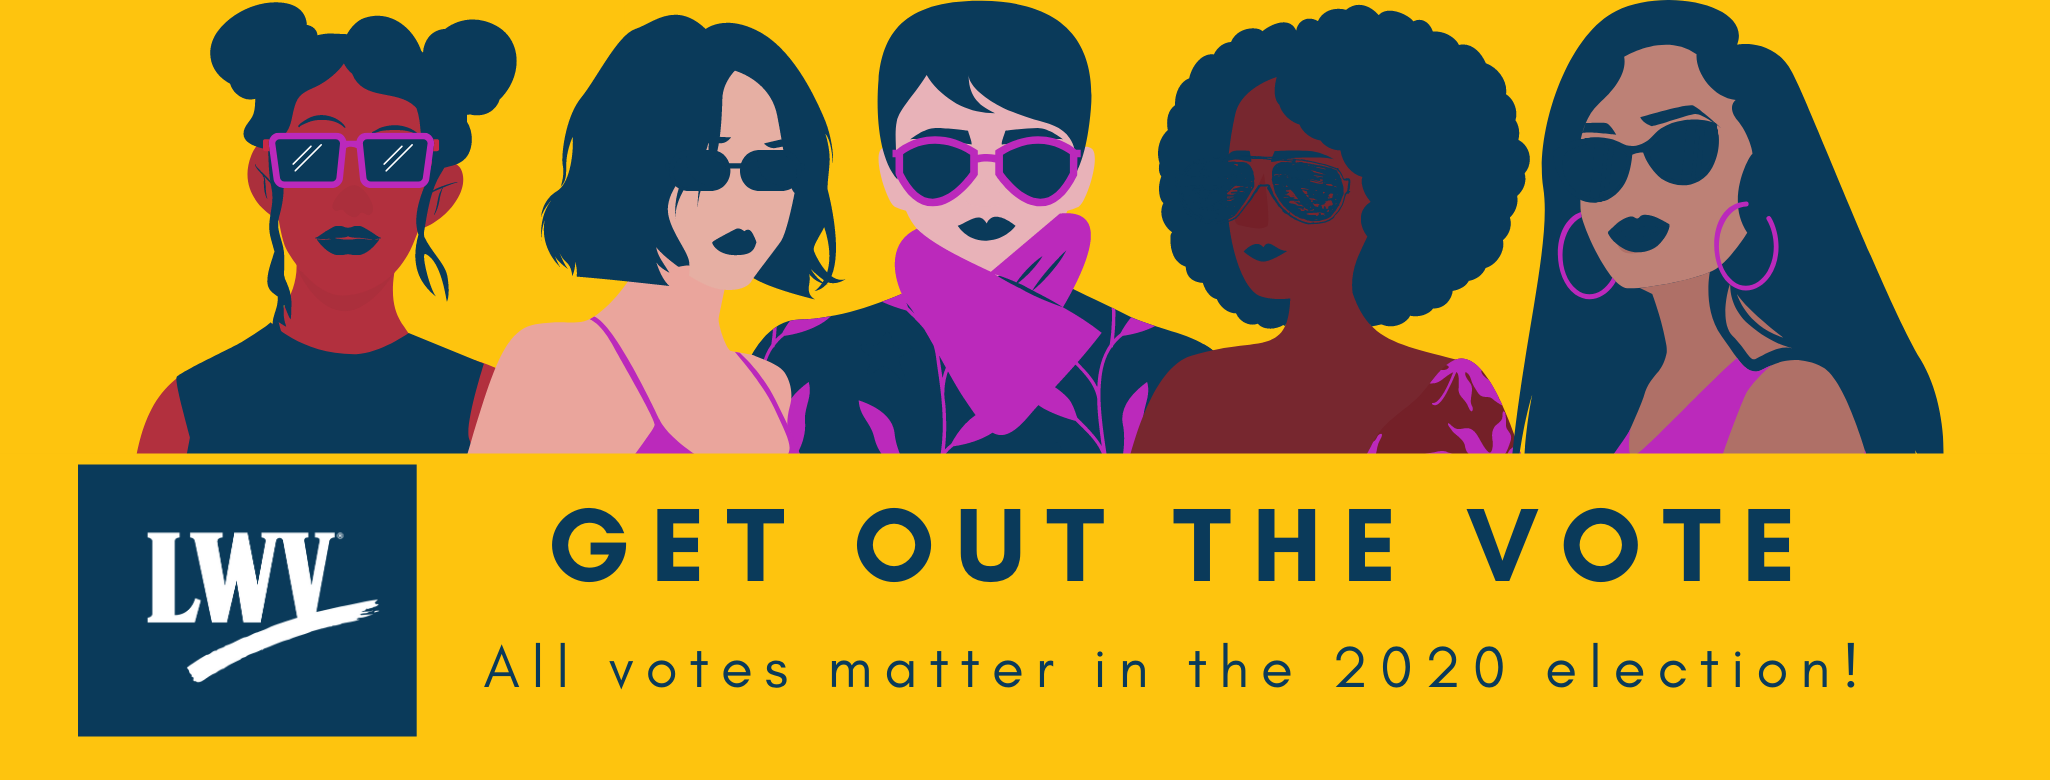 Get Out the Vote: All votes matter in the 2020 elections